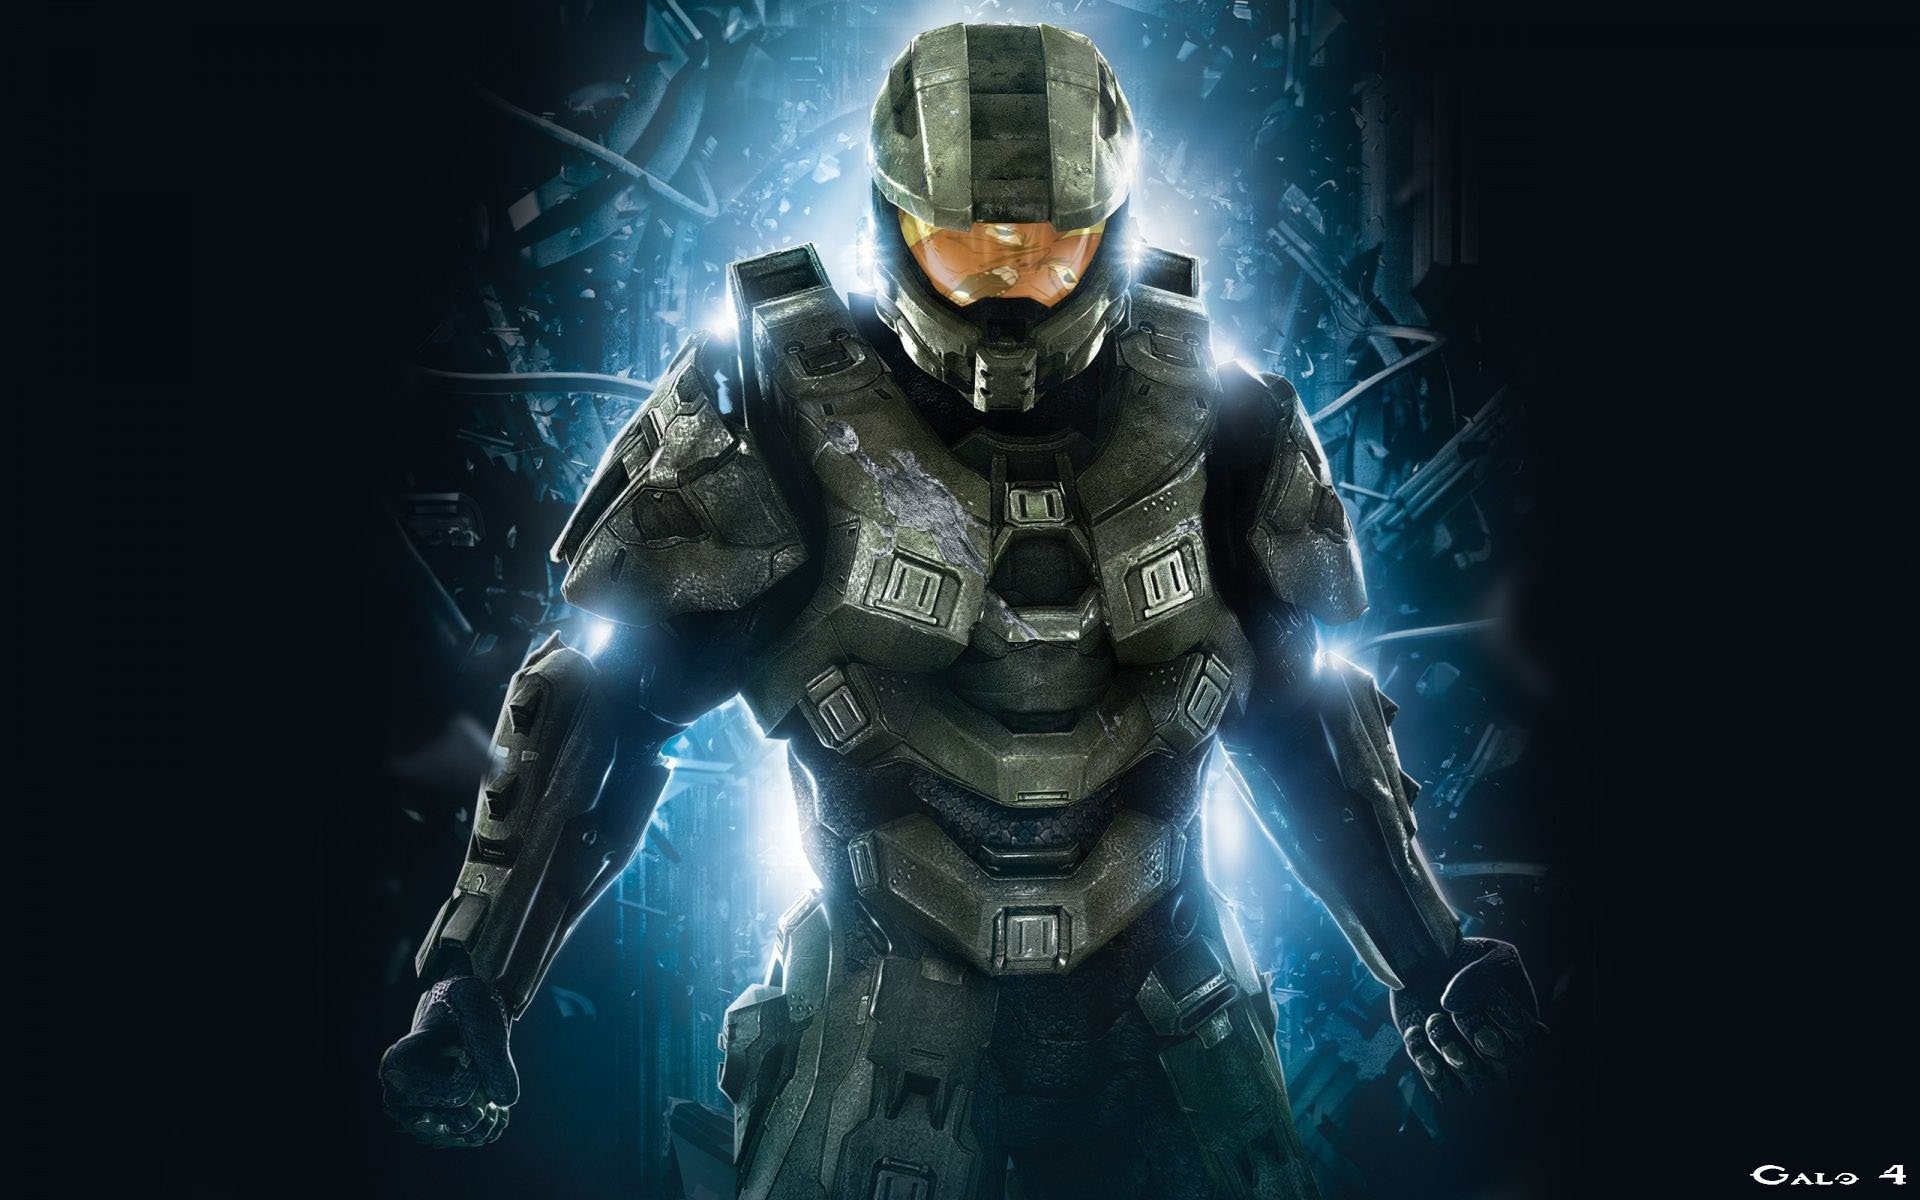 92 Halo 4 Hd Wallpapers Background Images Wallpaper Abyss